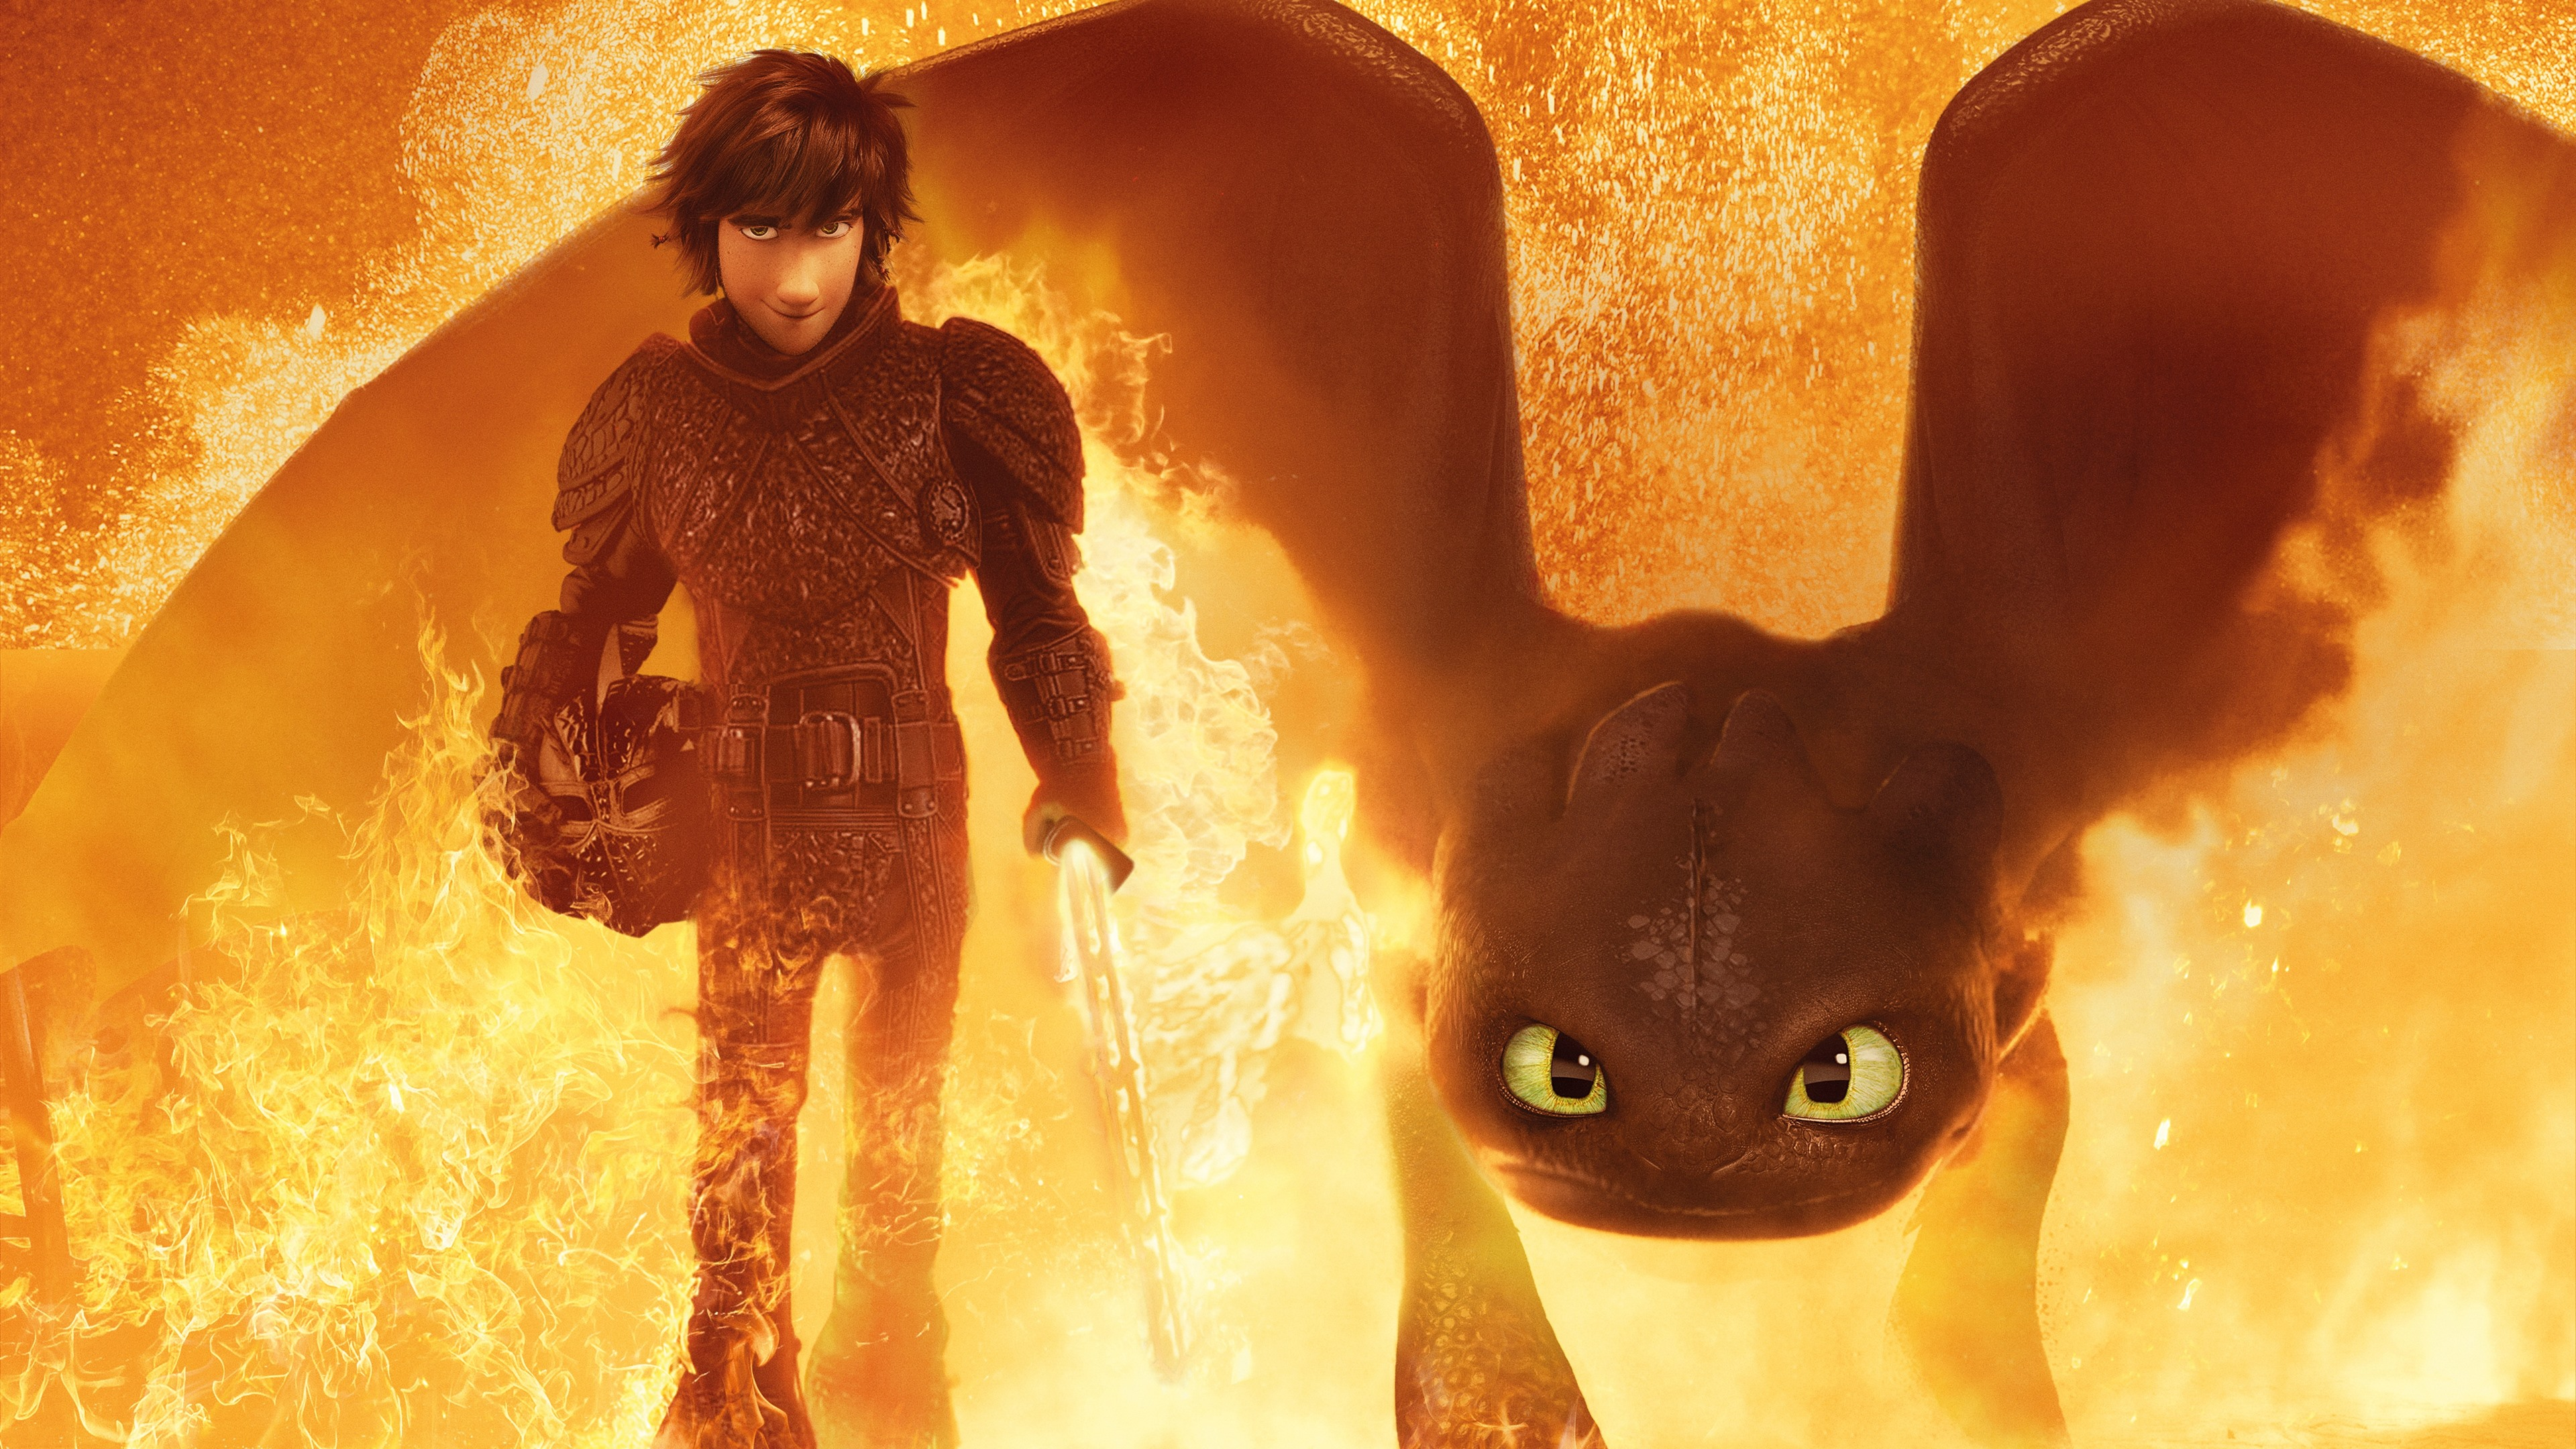 Wallpaper How To Train Your Dragon 3 Fire Sword 3840x2160 Uhd 4k